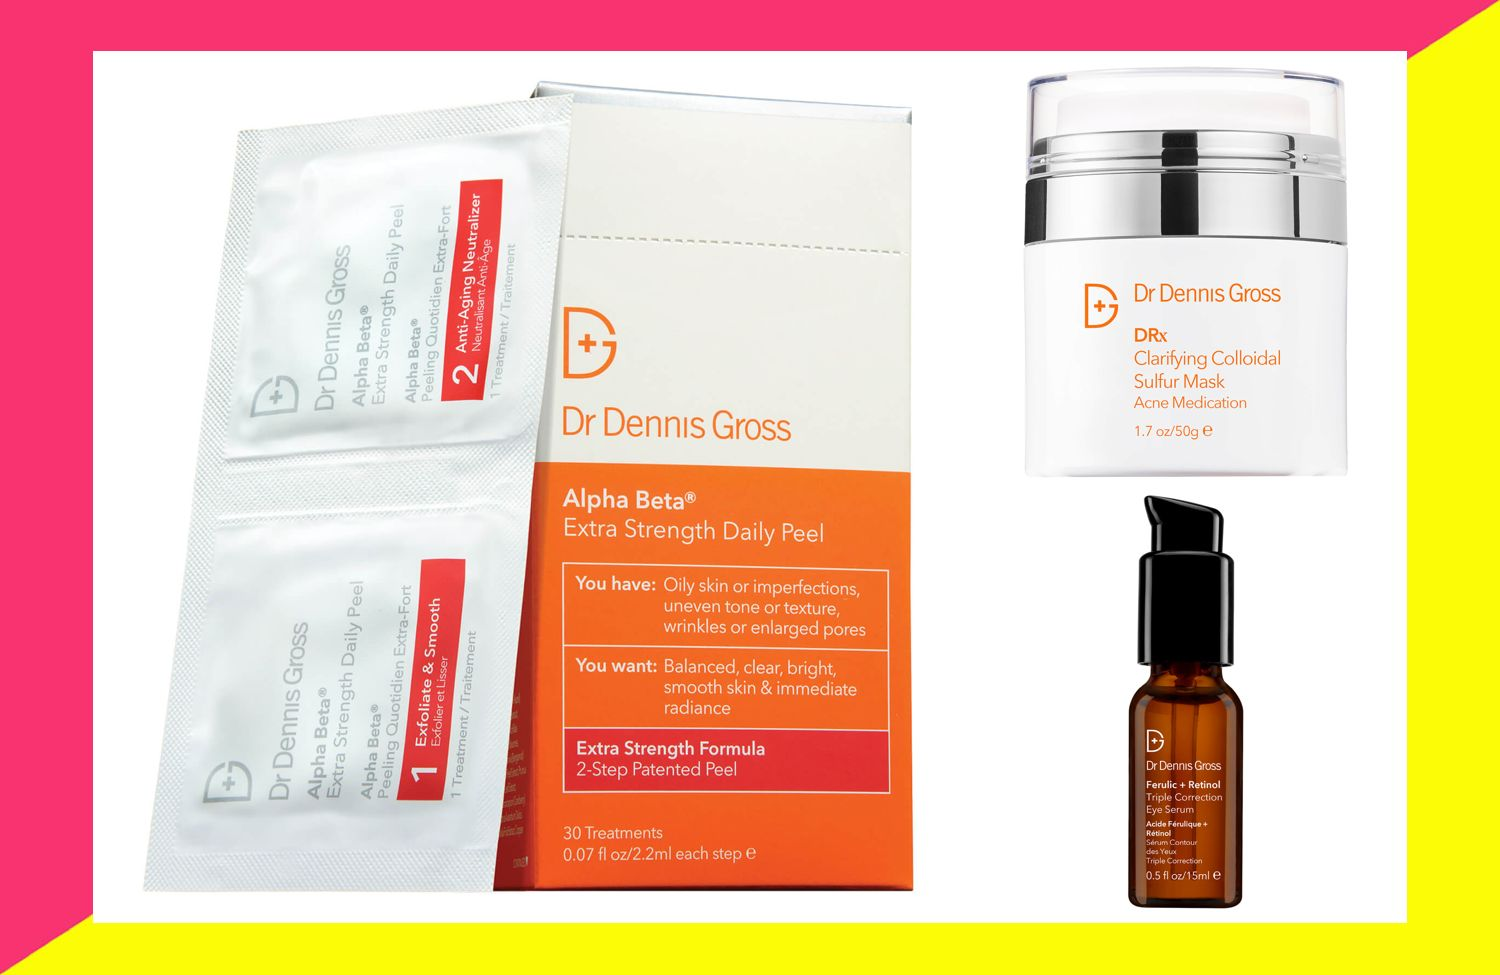 dr dennis gross products